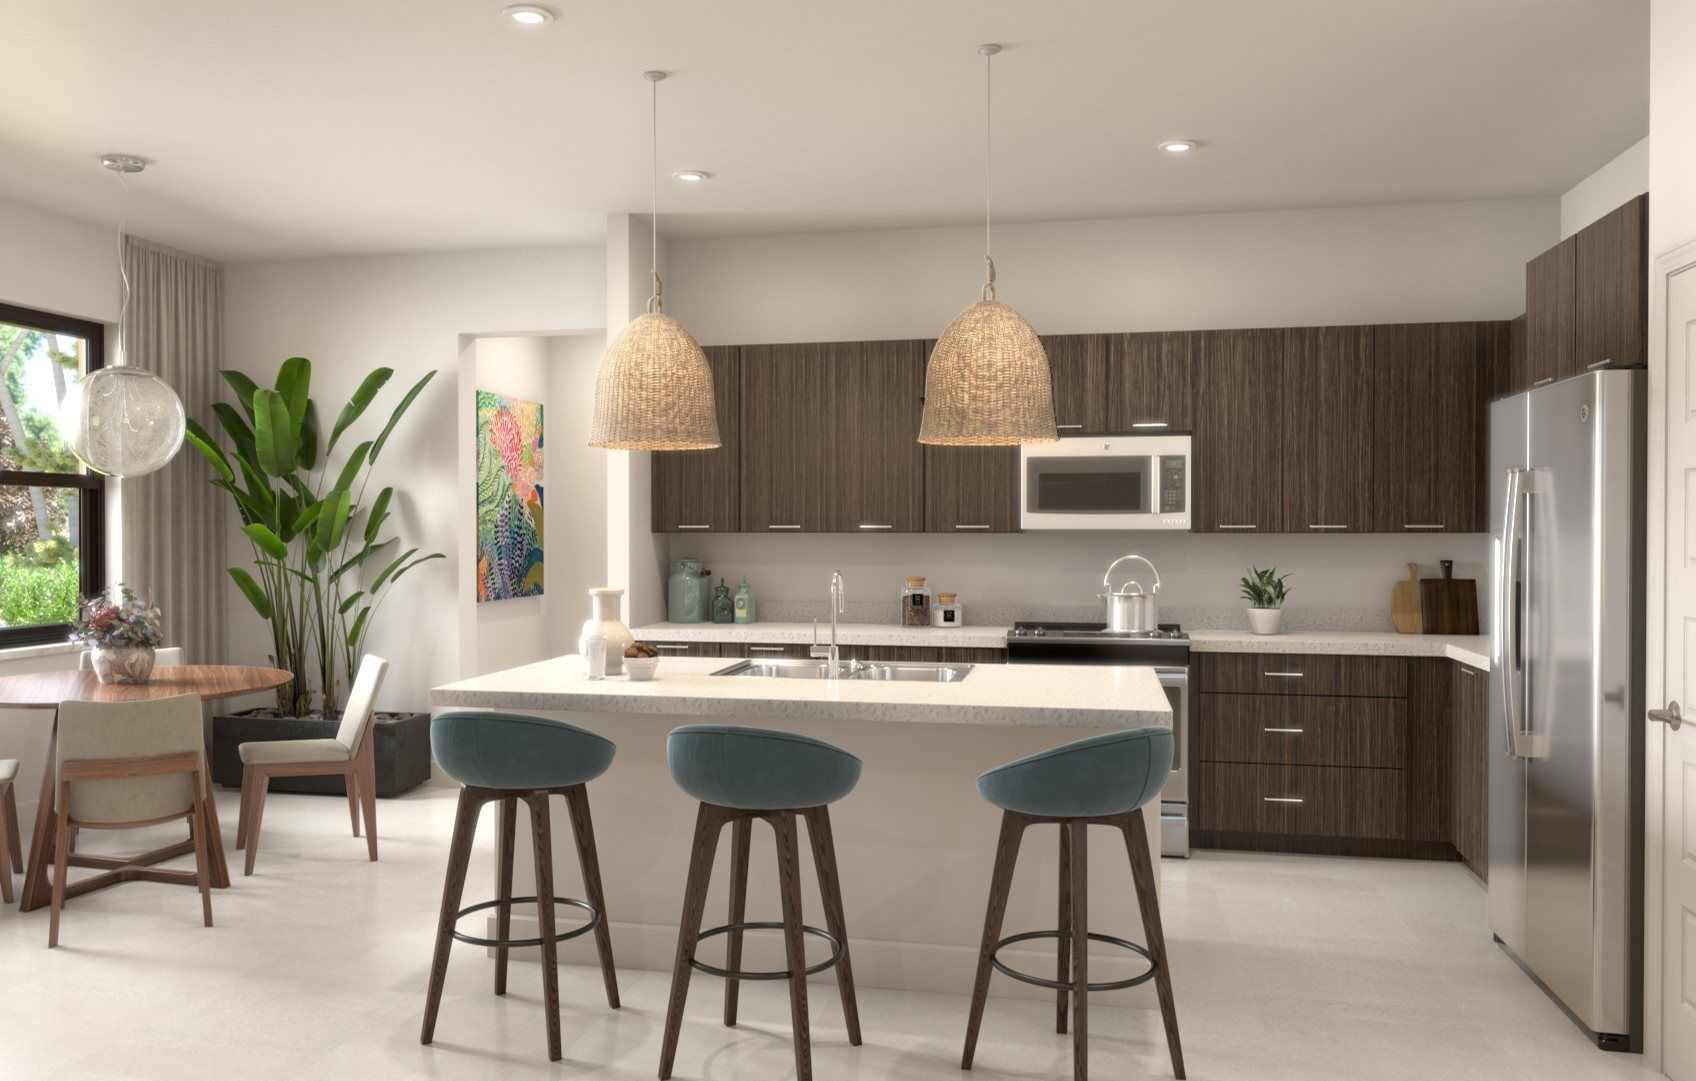 Kitchen featured in the Marquez By Lennar in Broward County-Ft. Lauderdale, FL